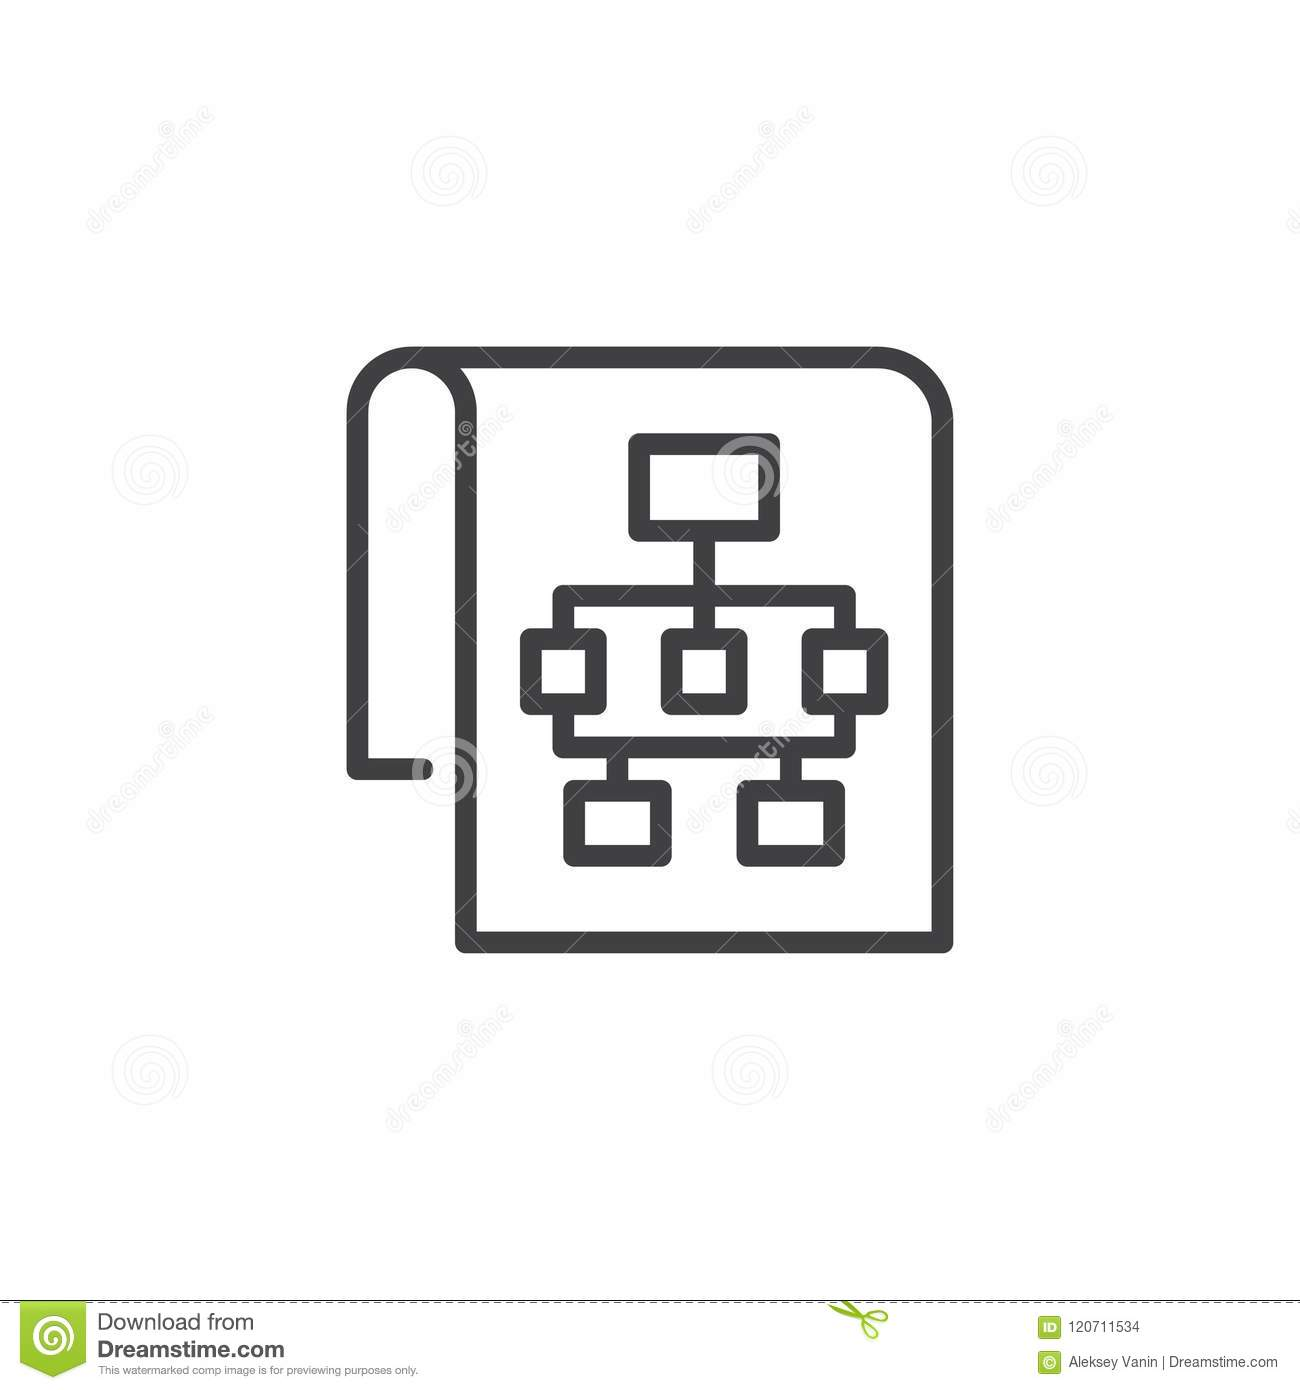 Sitemap outline icon